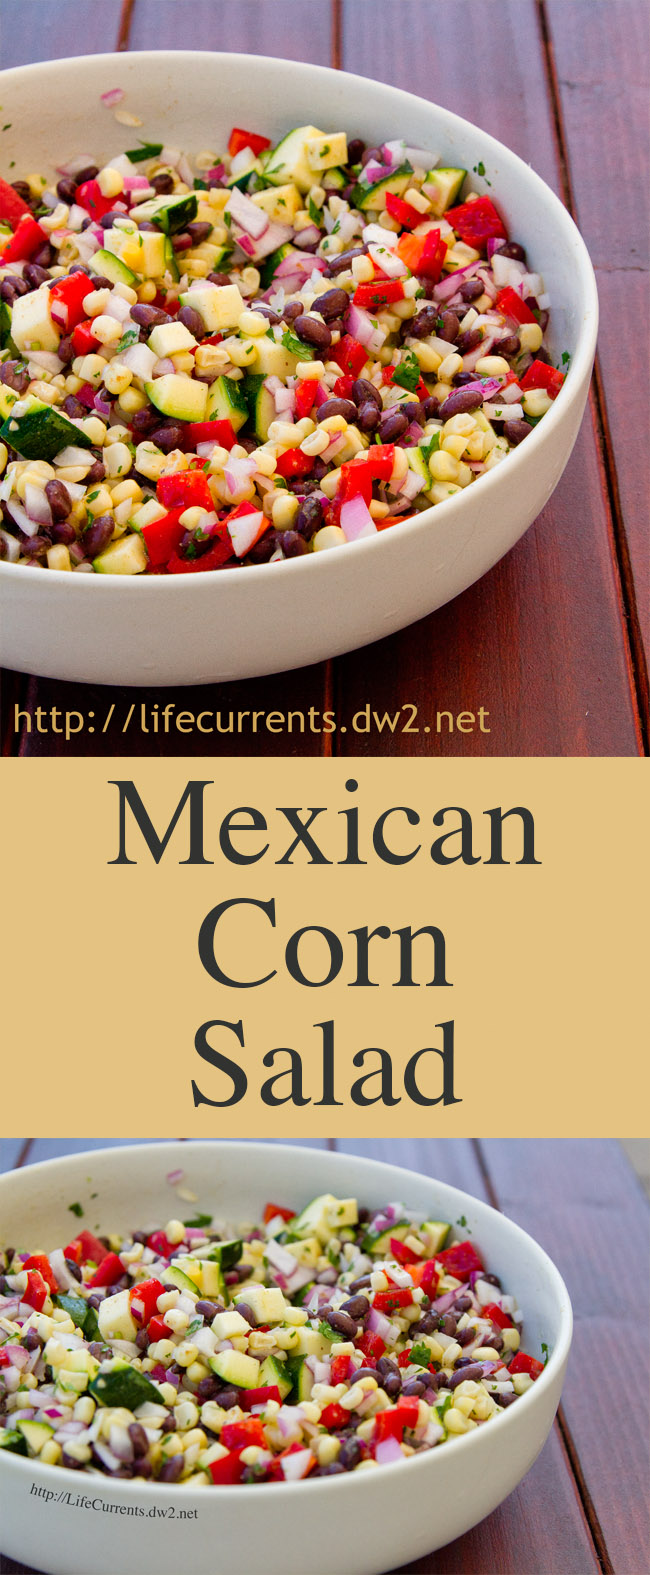 Mexican Corn Salad Recipe Pinterest long pin with two images and a title